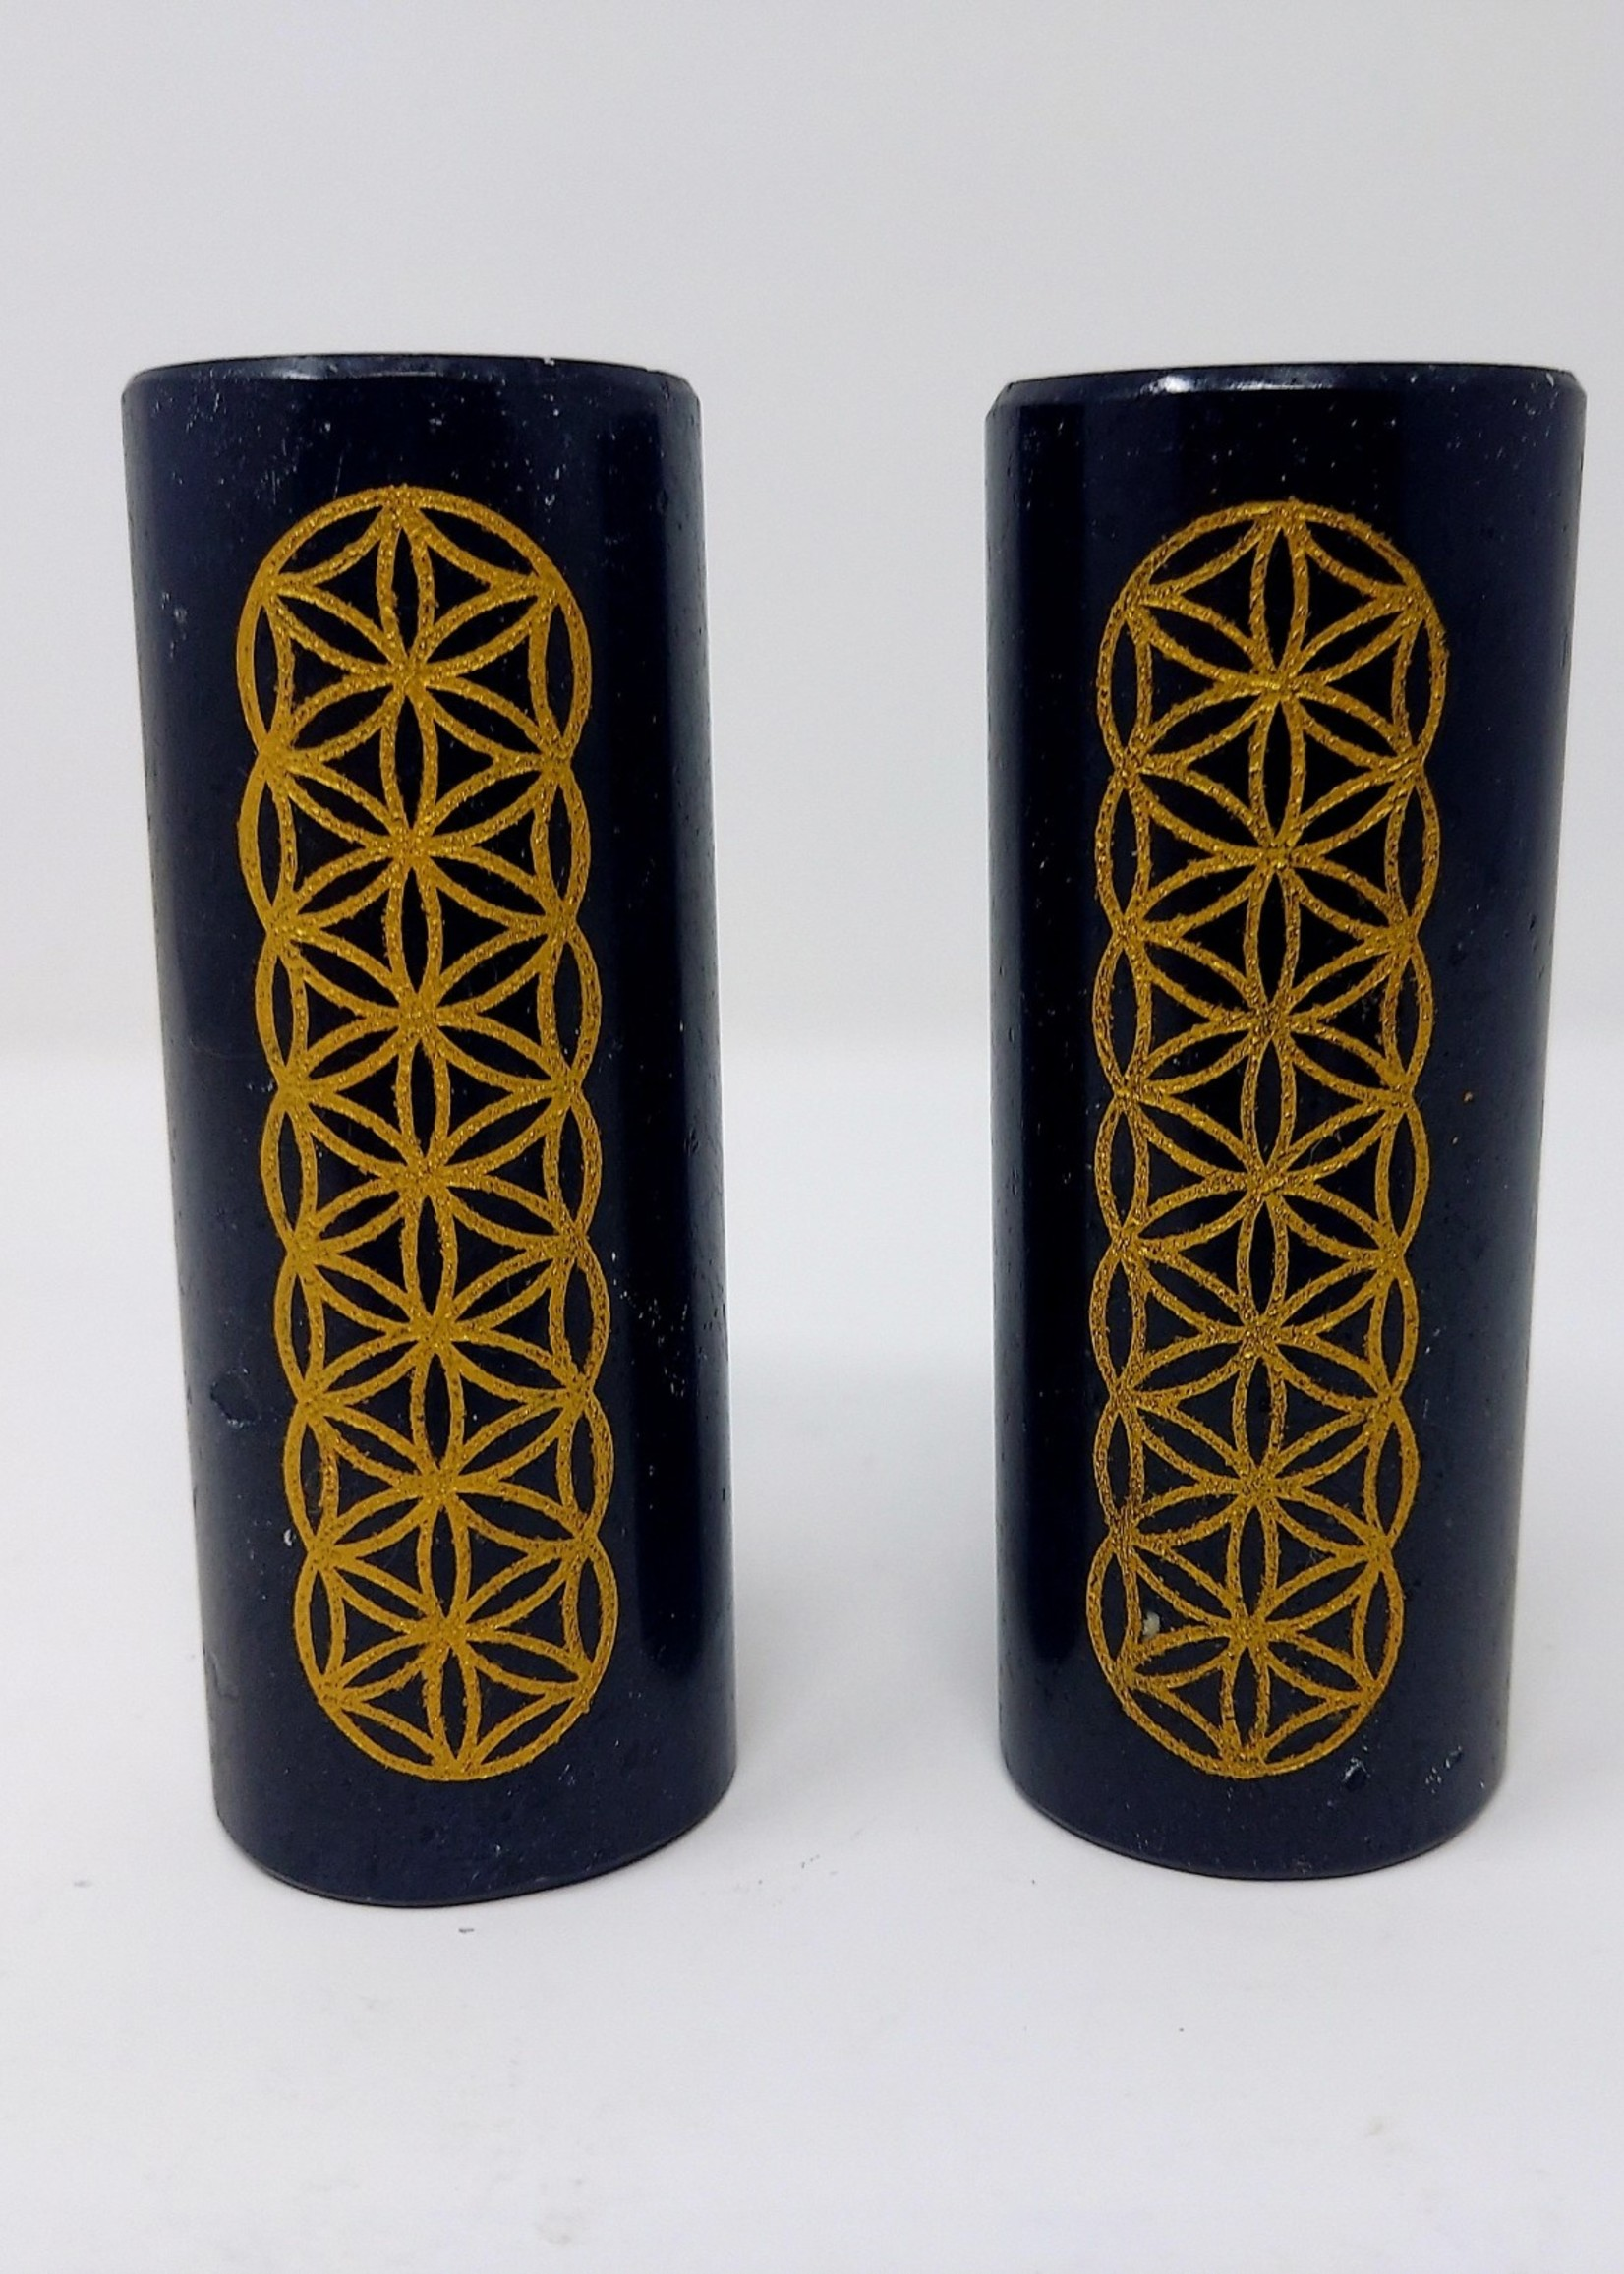 Black Torumaline Meditation Charger w/Seed of Life Engraving in Gold